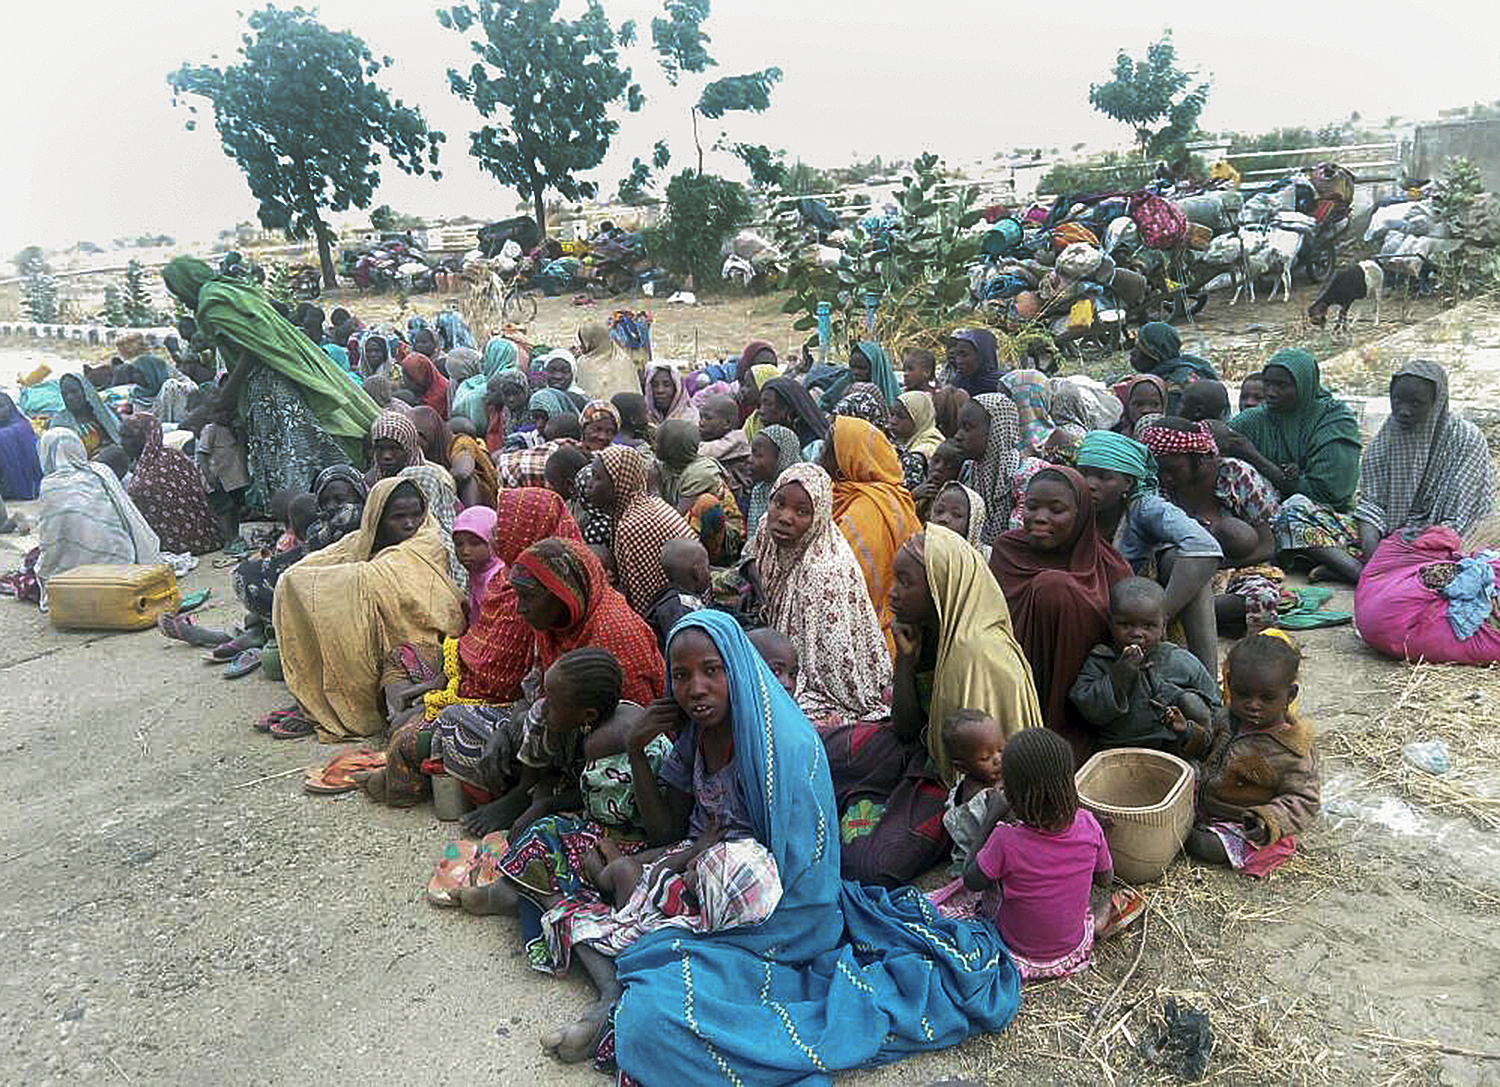 Boko Haram Deploys Lots of Women Suicide Bombers. I Found Out Why